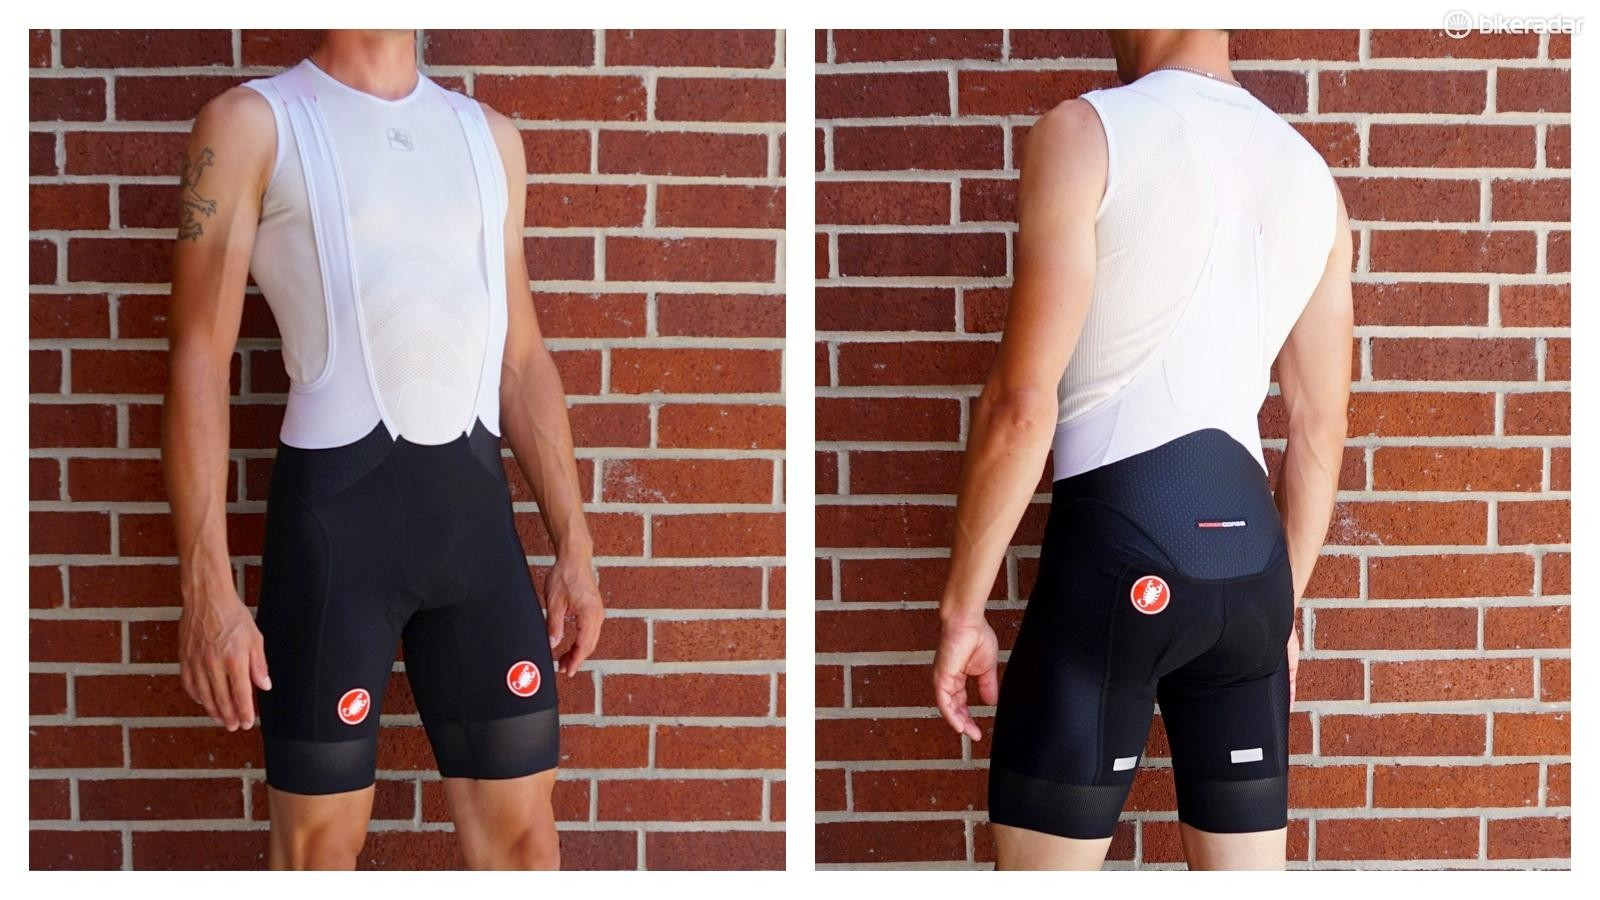 The Free Aero bib from Castelli was the only Italian brand to forgo a distinctive 'male factor' space in the front